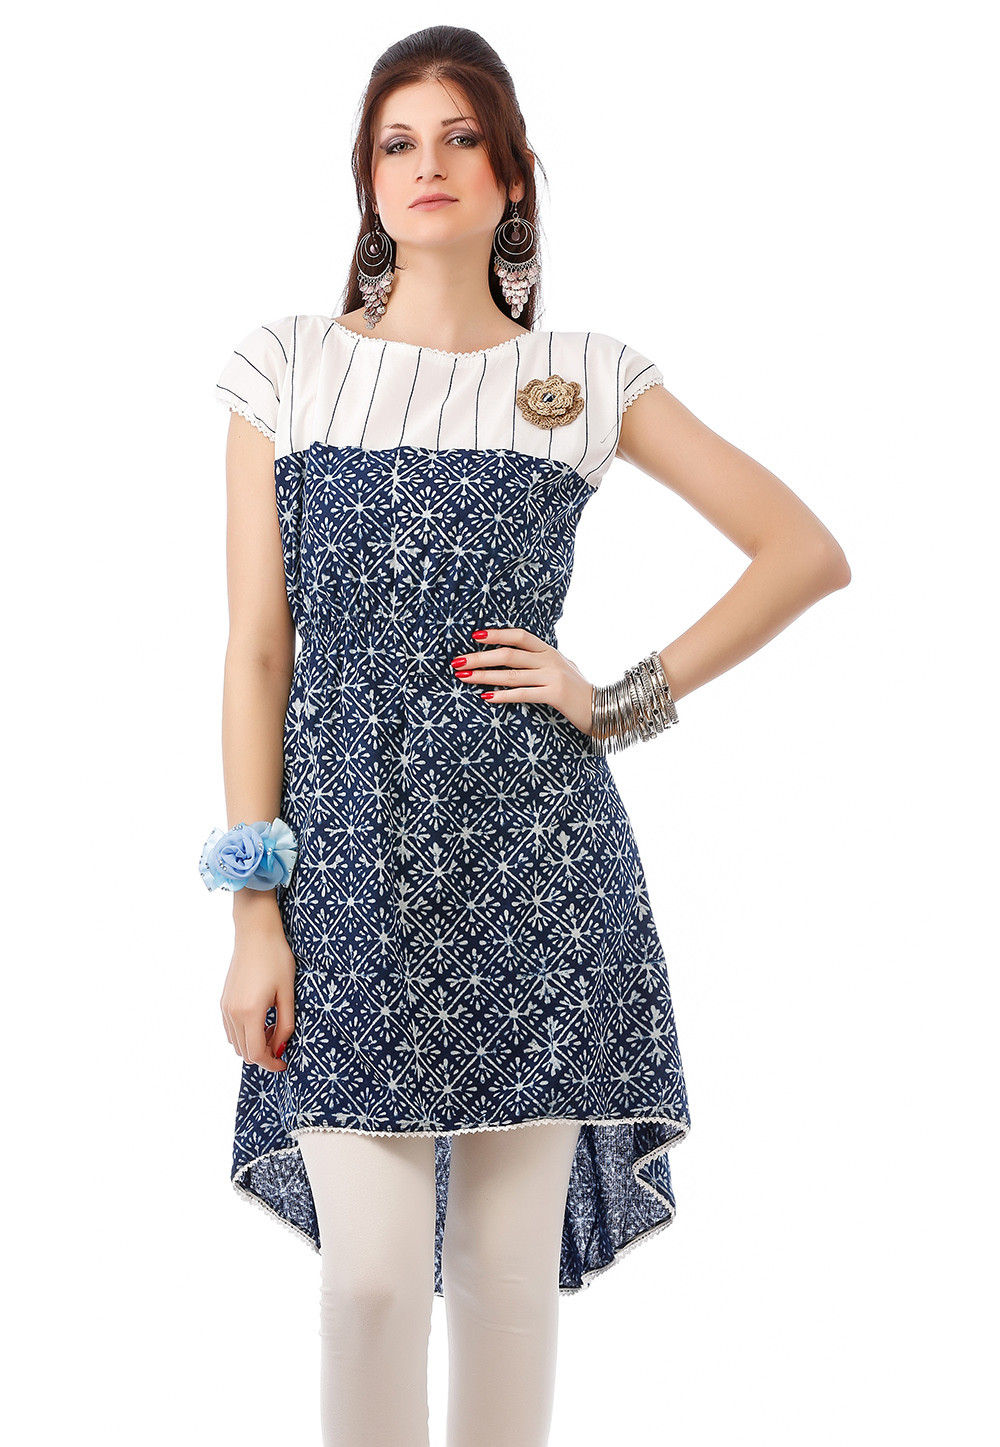 Block Printed Cotton Asymmetric Tunic In Navy Blue And White